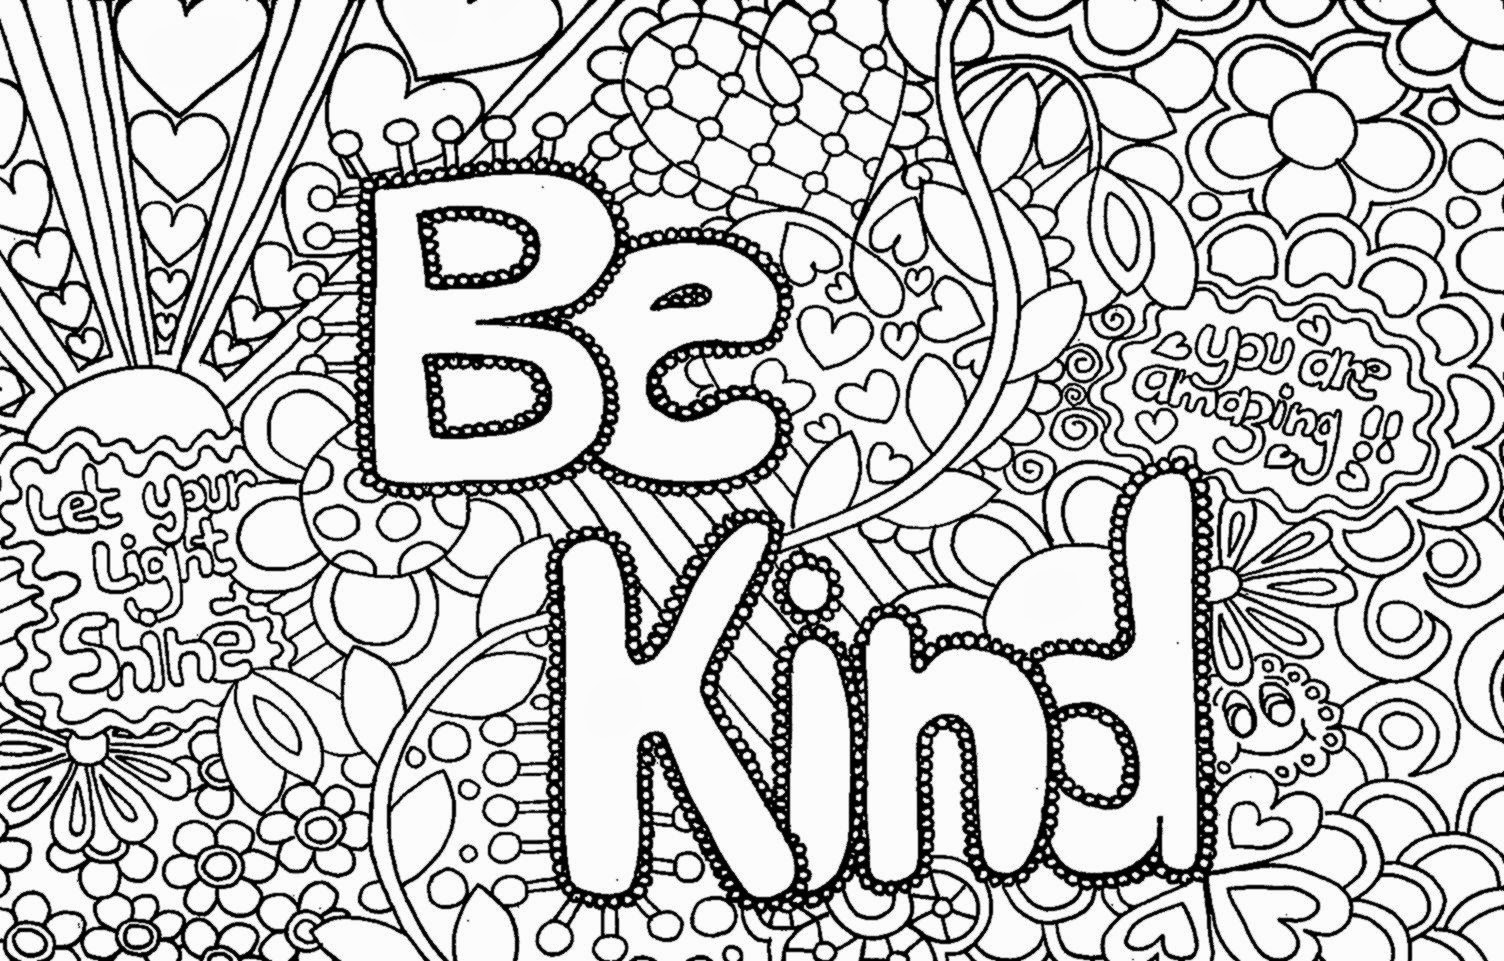 Coloring pages for 7th graders - Coloring pages for 7th graders coloring pages for 7th graders coloring pages for teenagers coloringpages4kid